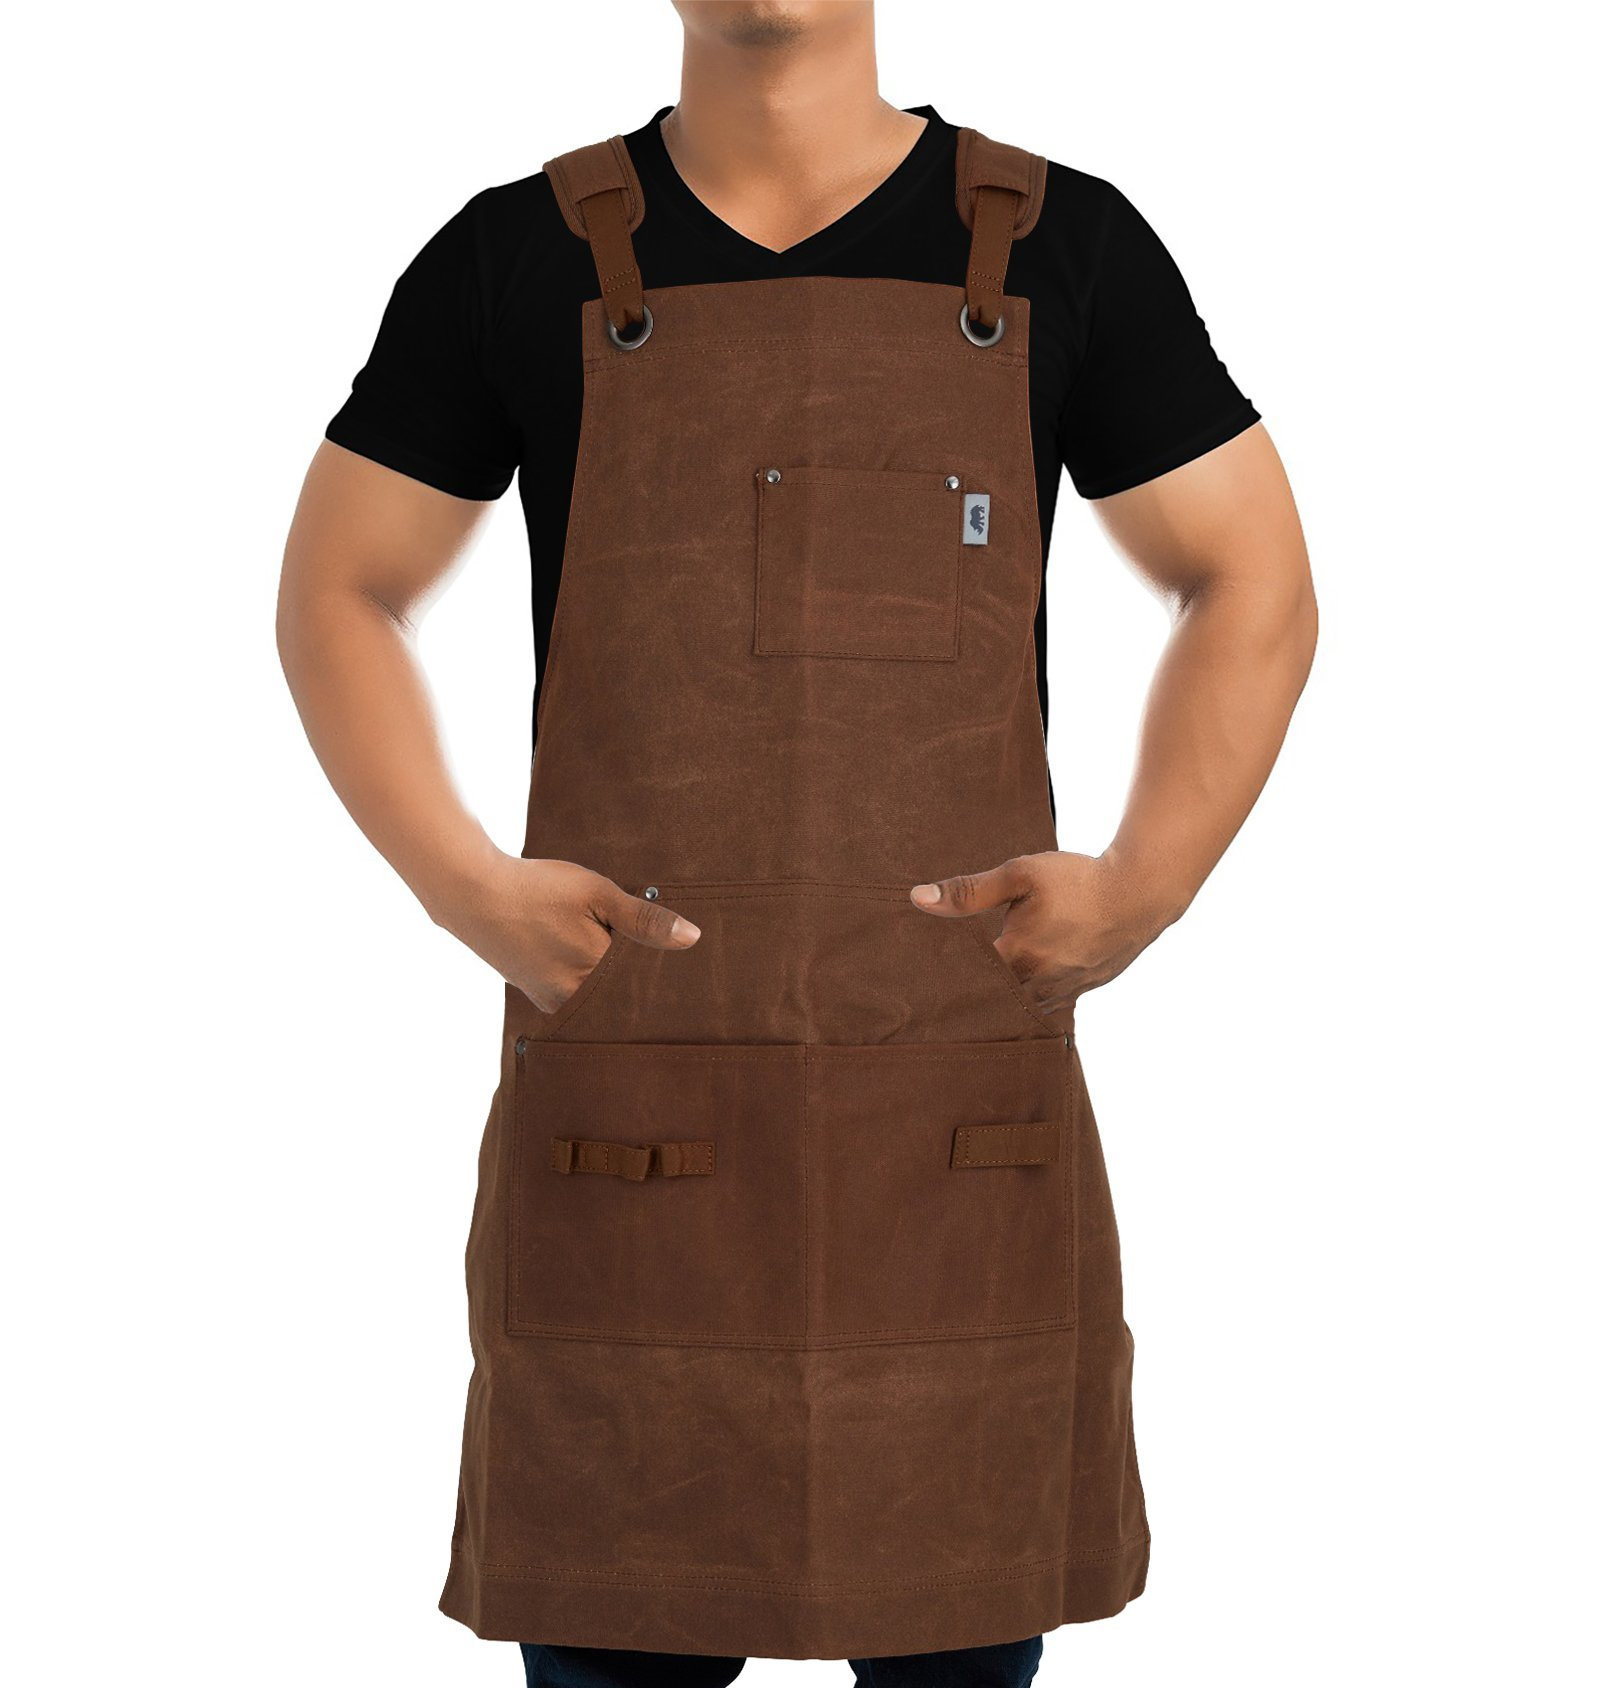 Heavy-Duty Waxed-Canvas Work Apron for Men and Women withPockets for ToolsCross-Back Straps – Adjustable from M to XXL (Brown)